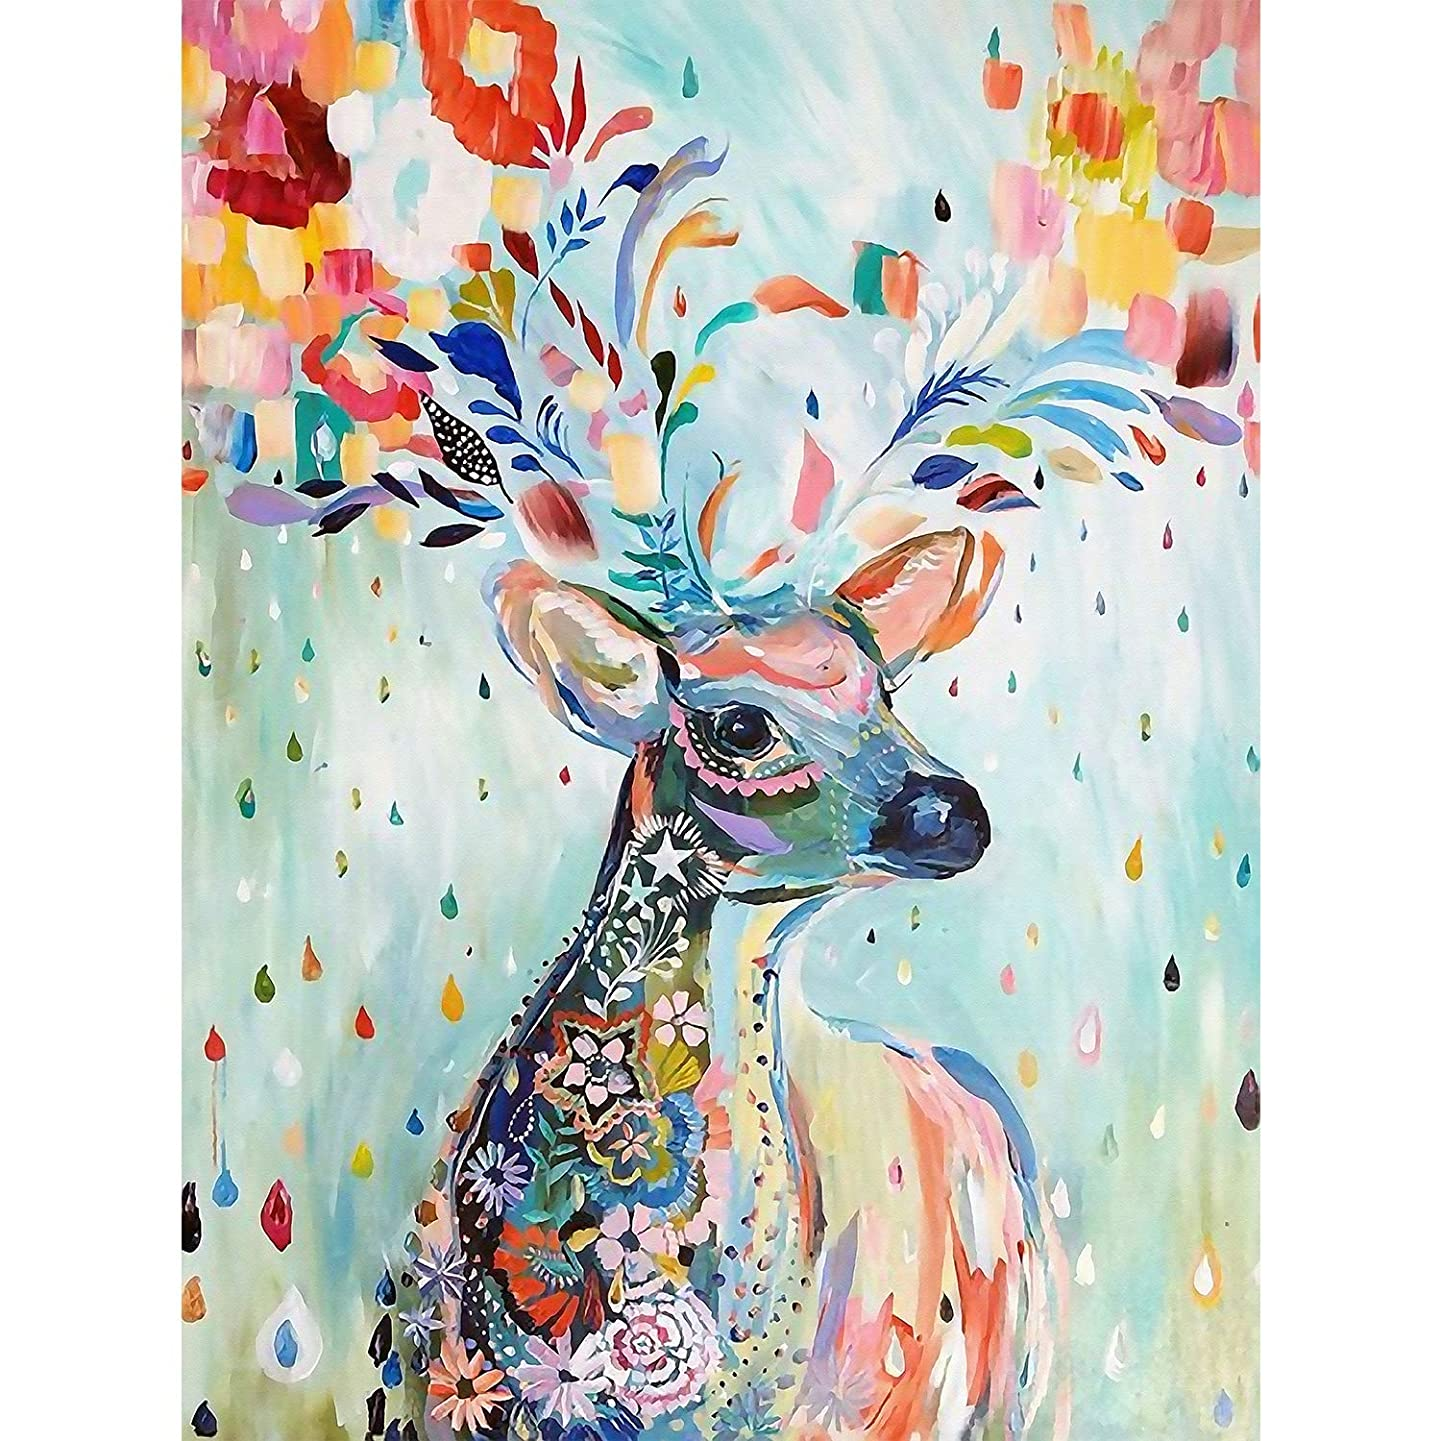 5D Full Drill Diamond Painting Kit, DIY Diamond Rhinestone Painting Kits for Adults and Children Embroidery Arts Craft Home Decor 14 x 19.6 inch (Colorful Deer)